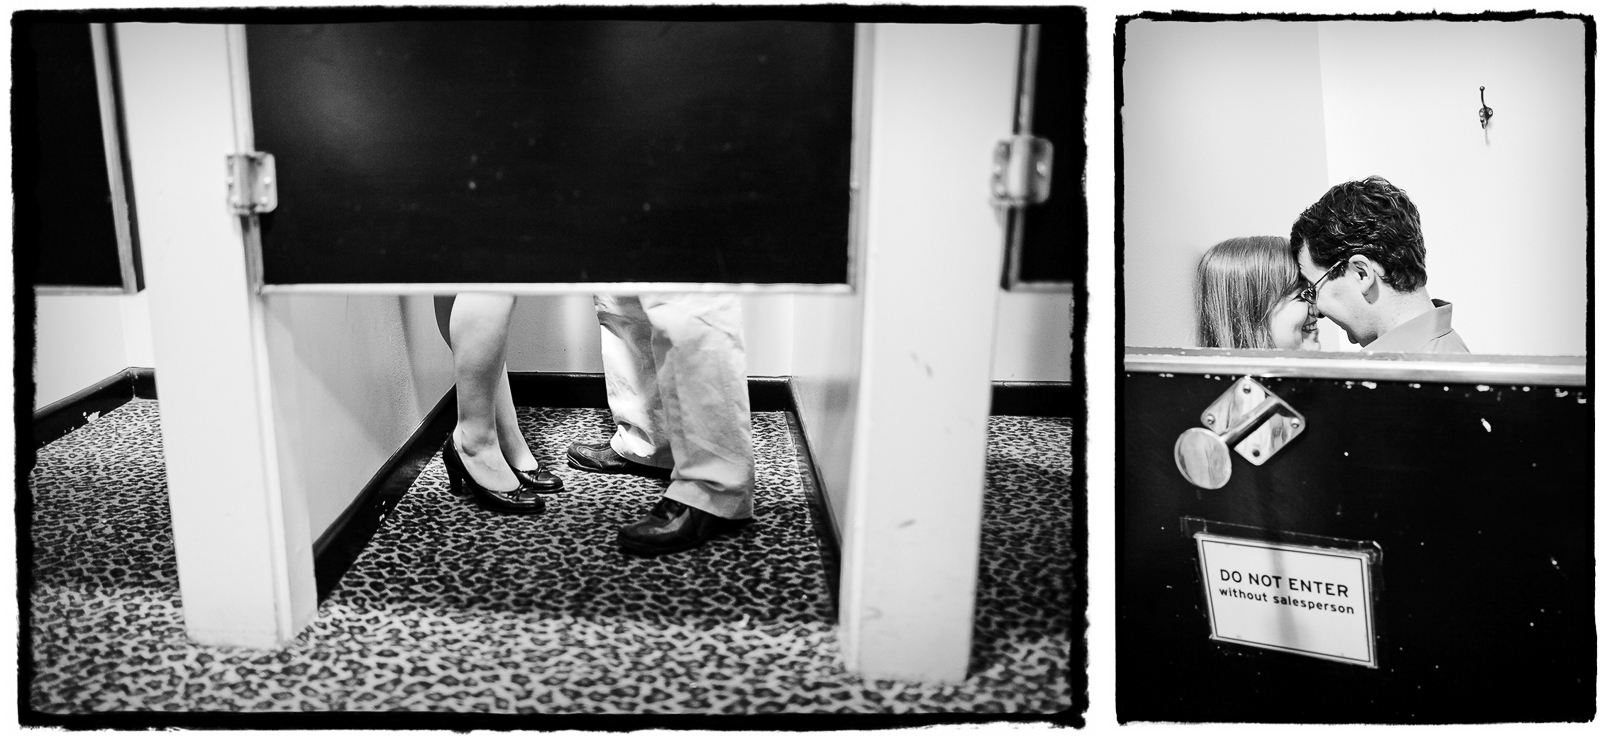 Engagement Portraits: Katie & Jason take a moment alone in the dressing room.